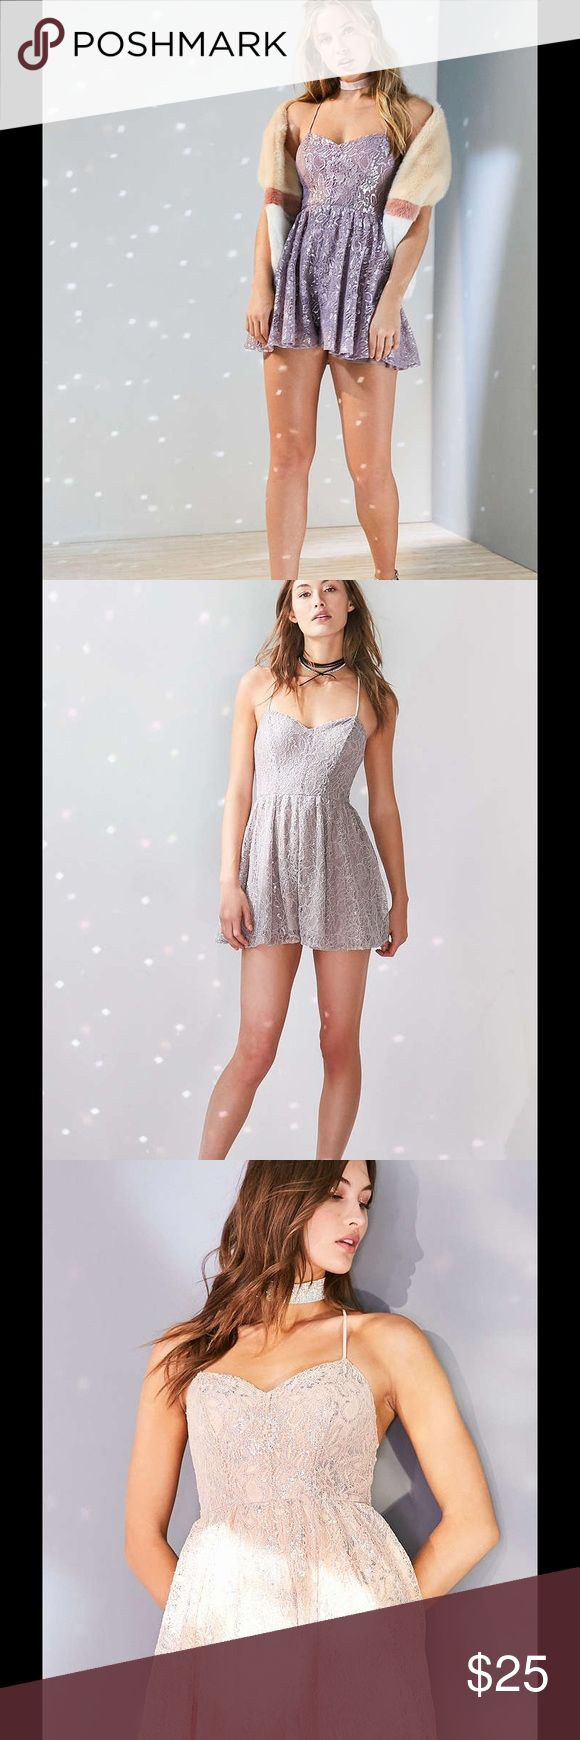 "Urban Outfitters Kimchi Blue Shimmer Lace Dress DO NOT BUY THIS LISTING! Download the Dote shopping app and get this dress for $25 NWT plus FREE SHIPPING using the promo code ""PDIN at checkout. Urban Outfitters Dresses"